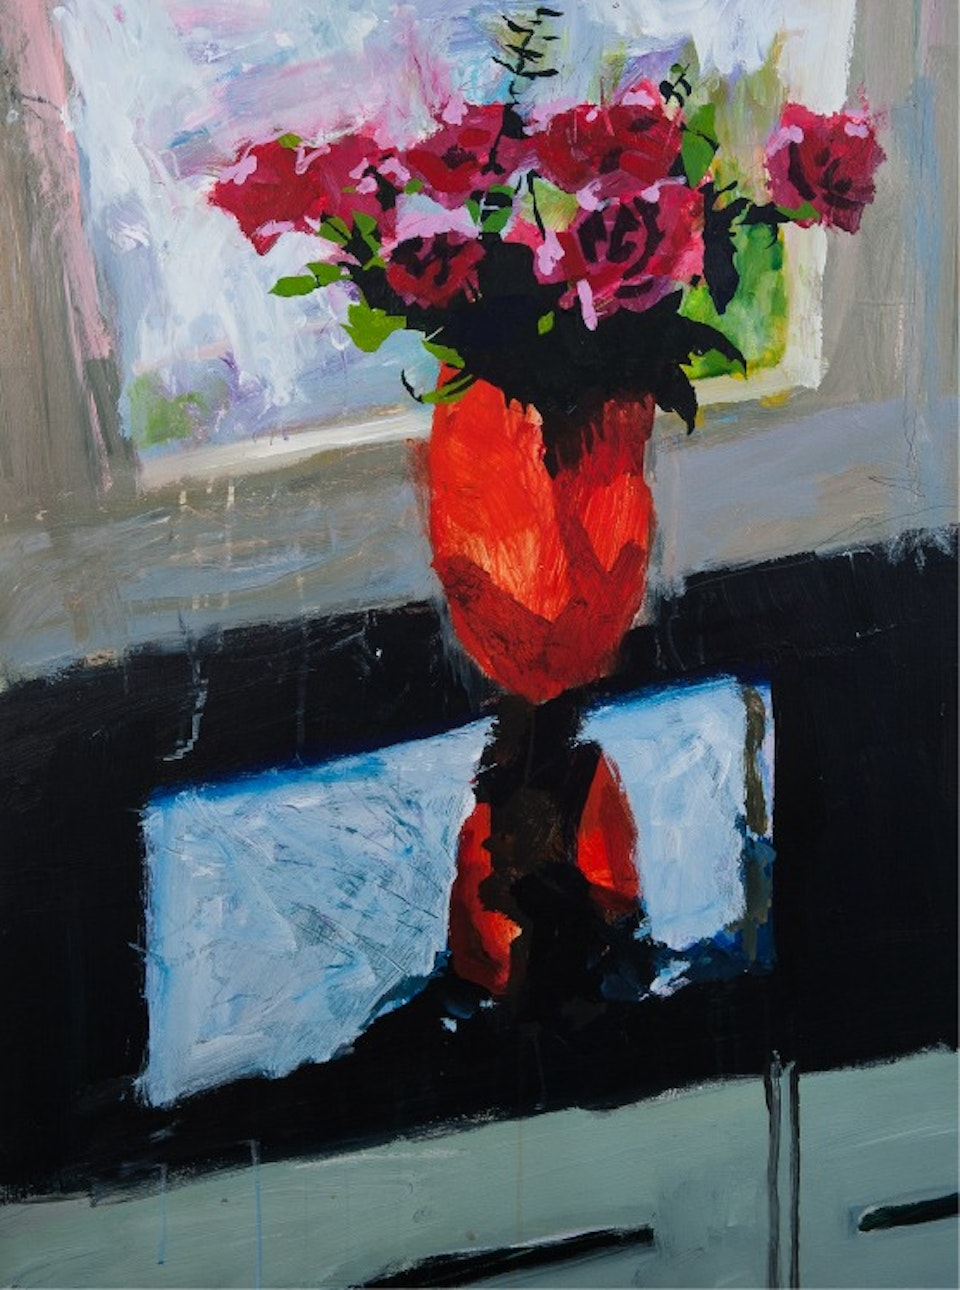 Paul Amey, Roses / Red Vase pigmented inks on archival paper  ed of 75